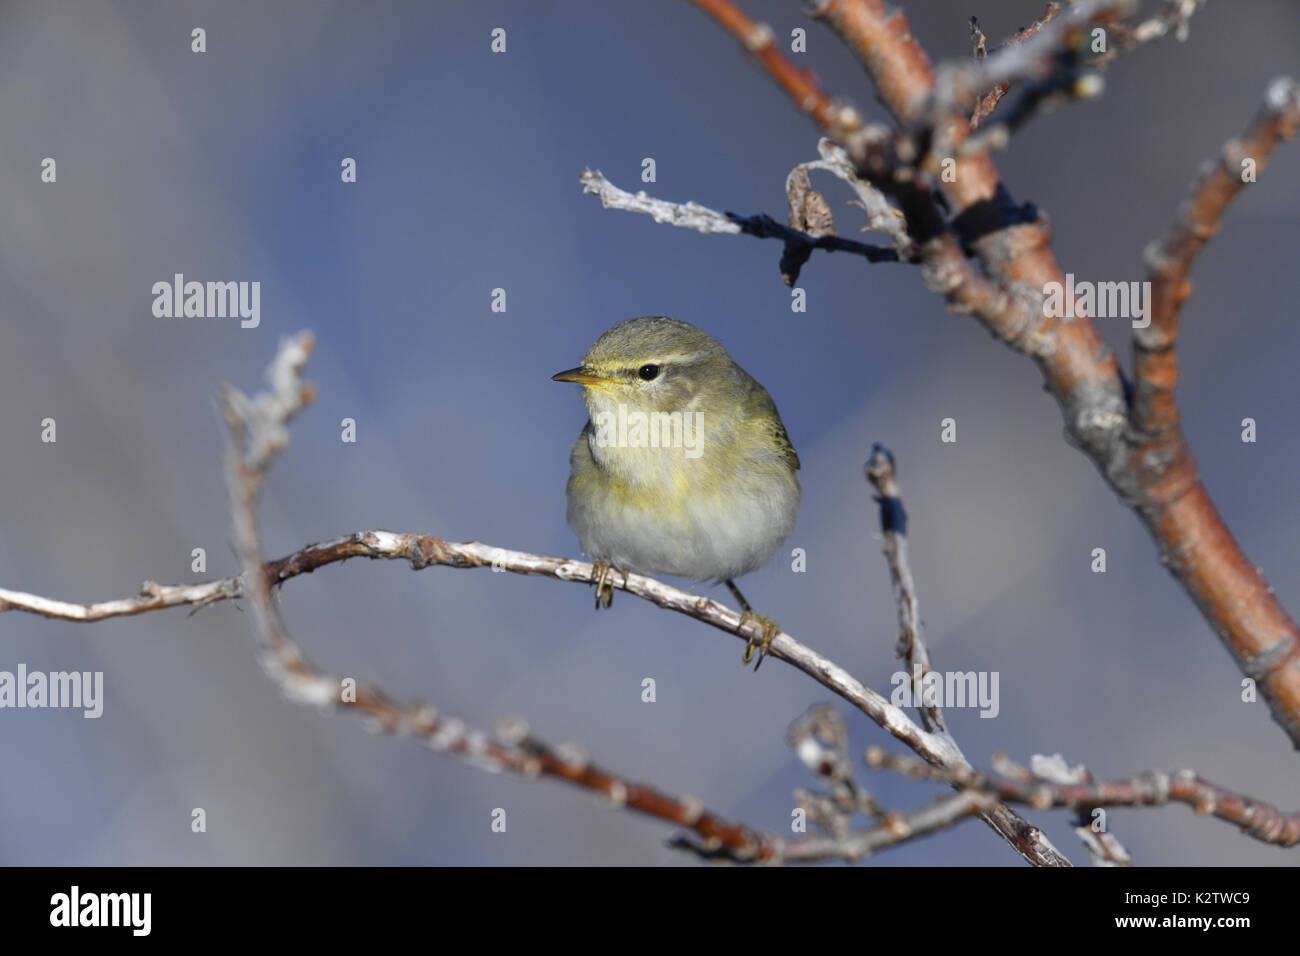 Willow Warbler - Phylloscopus trochilus - Stock Image